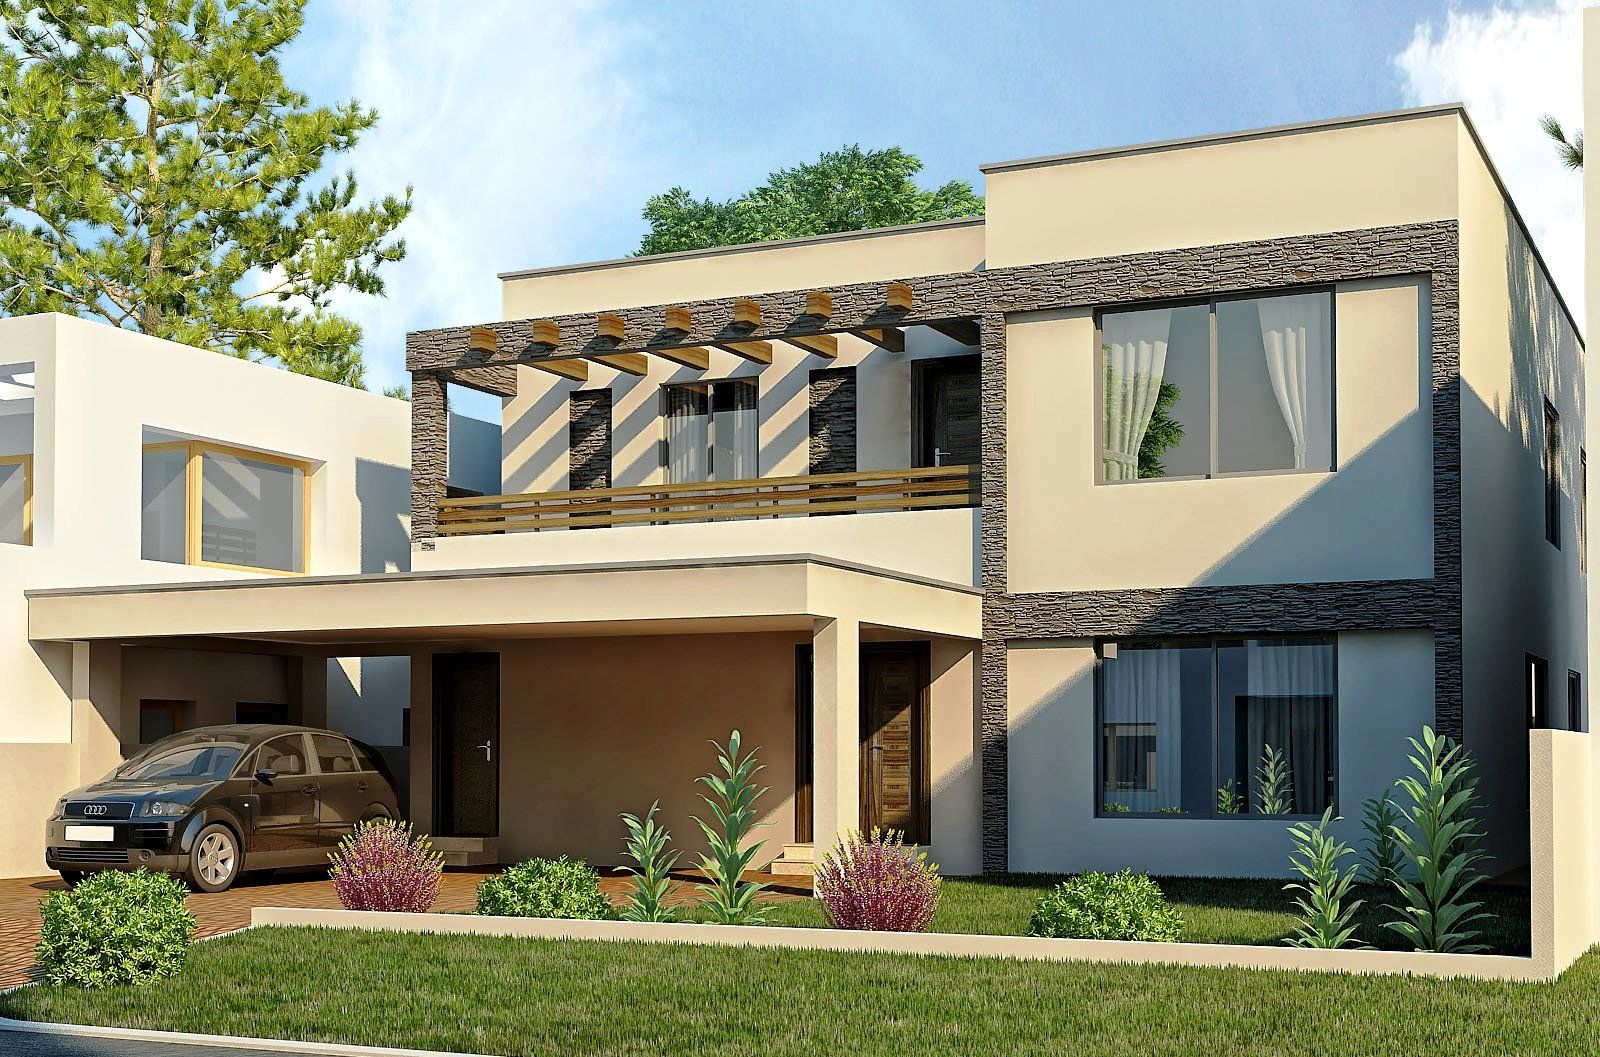 new home exterior designs. modern homes  Modern exterior designs views gardens ideas